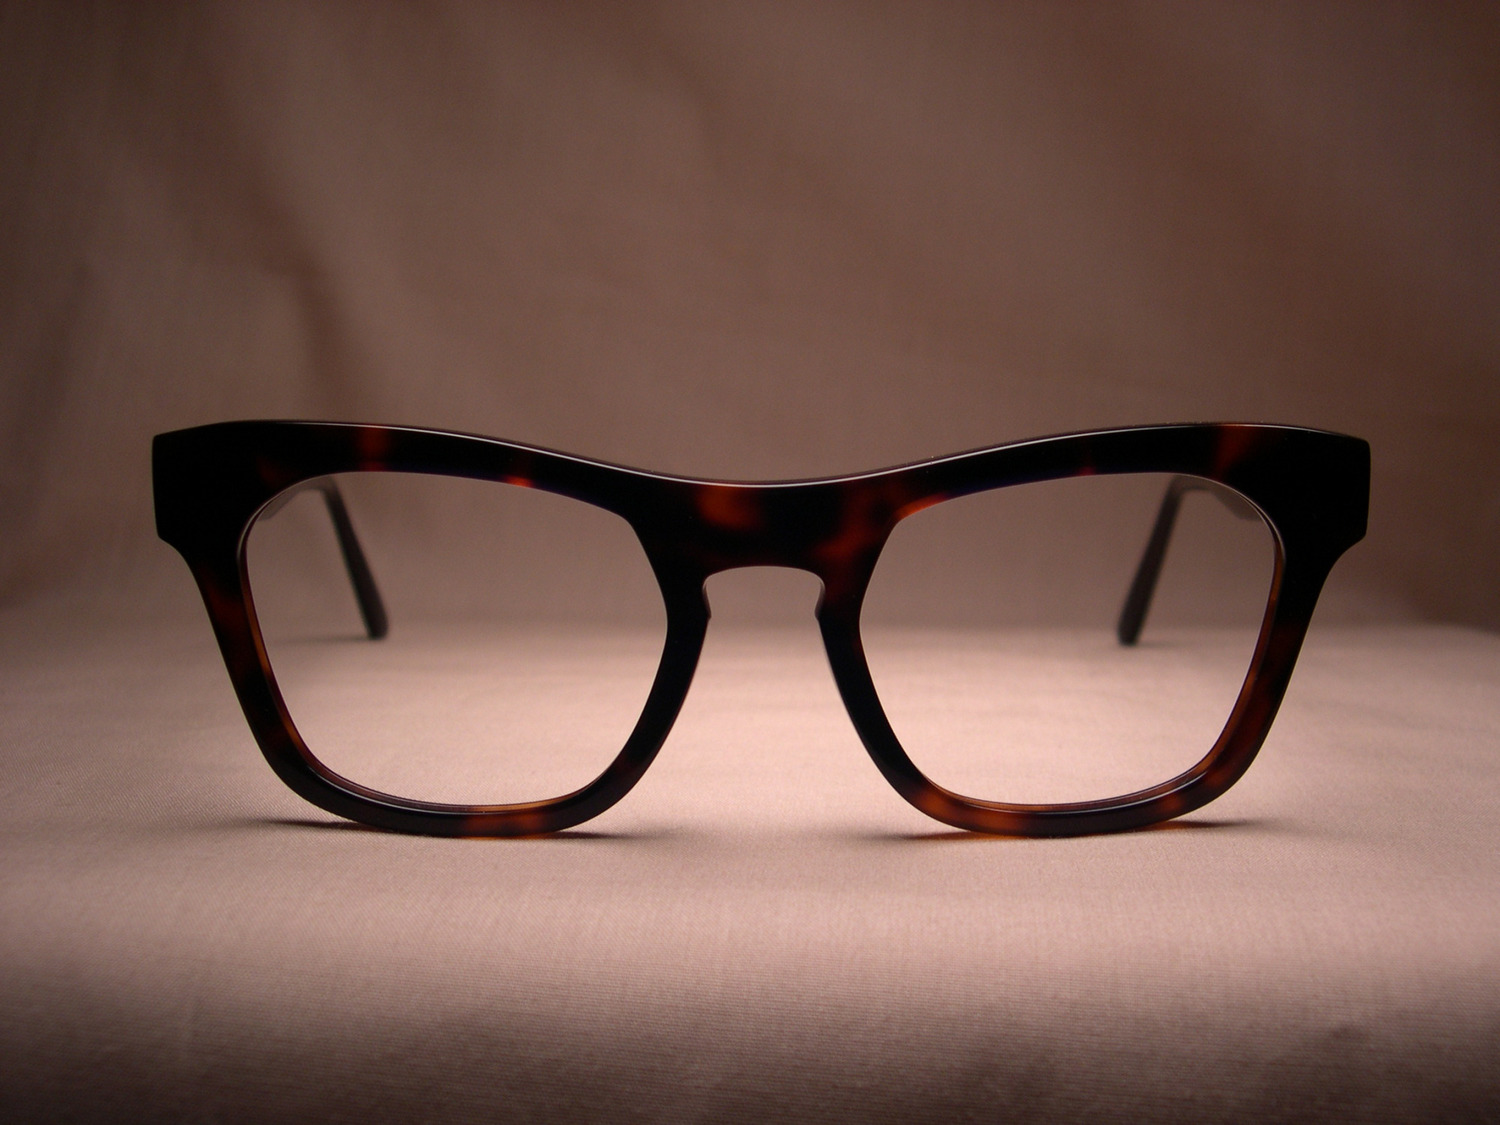 Indivijual-Custom-Glasses-43.jpg